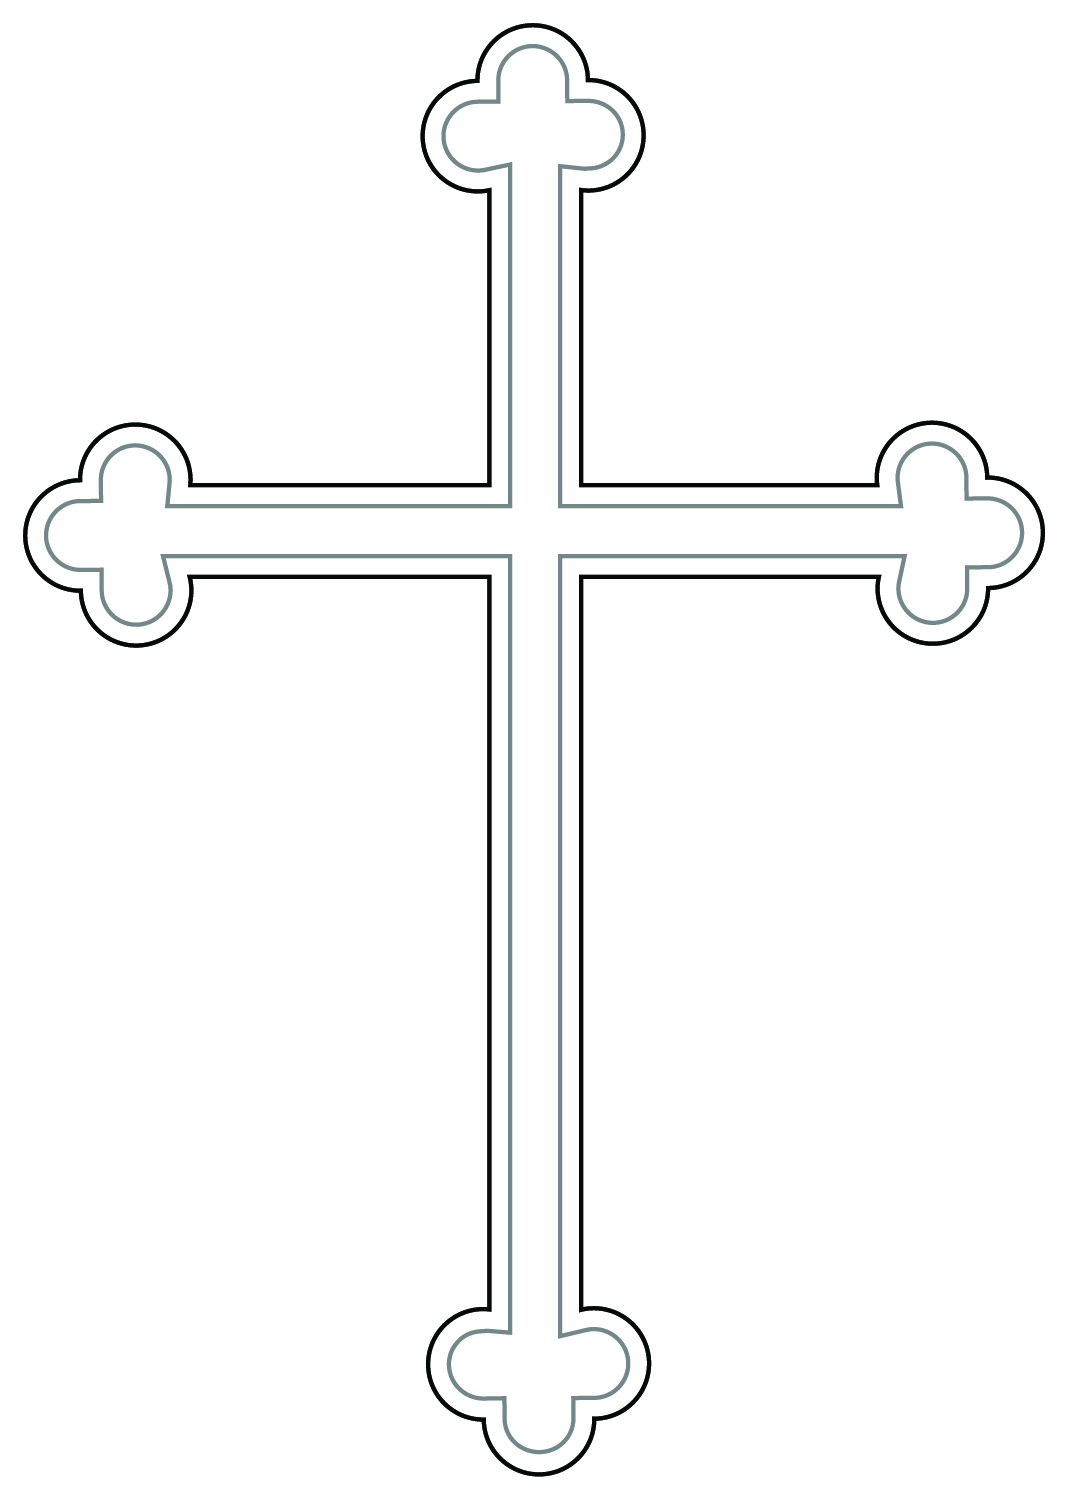 Dove and cross clipart free images 2